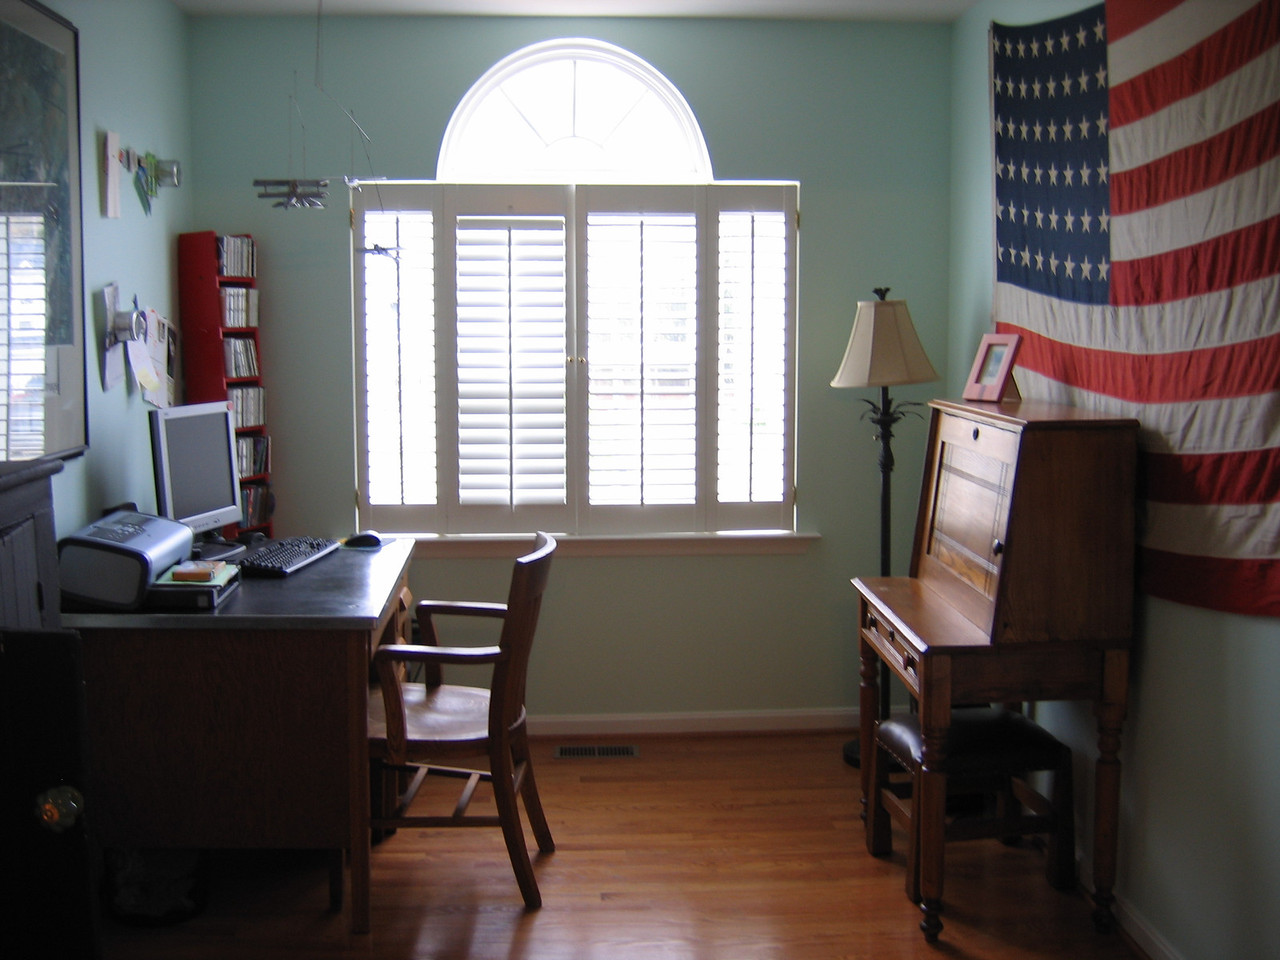 Here is the office.  Note how well decorated the entire house is, with small but nich touches such as the flag and simple desk.